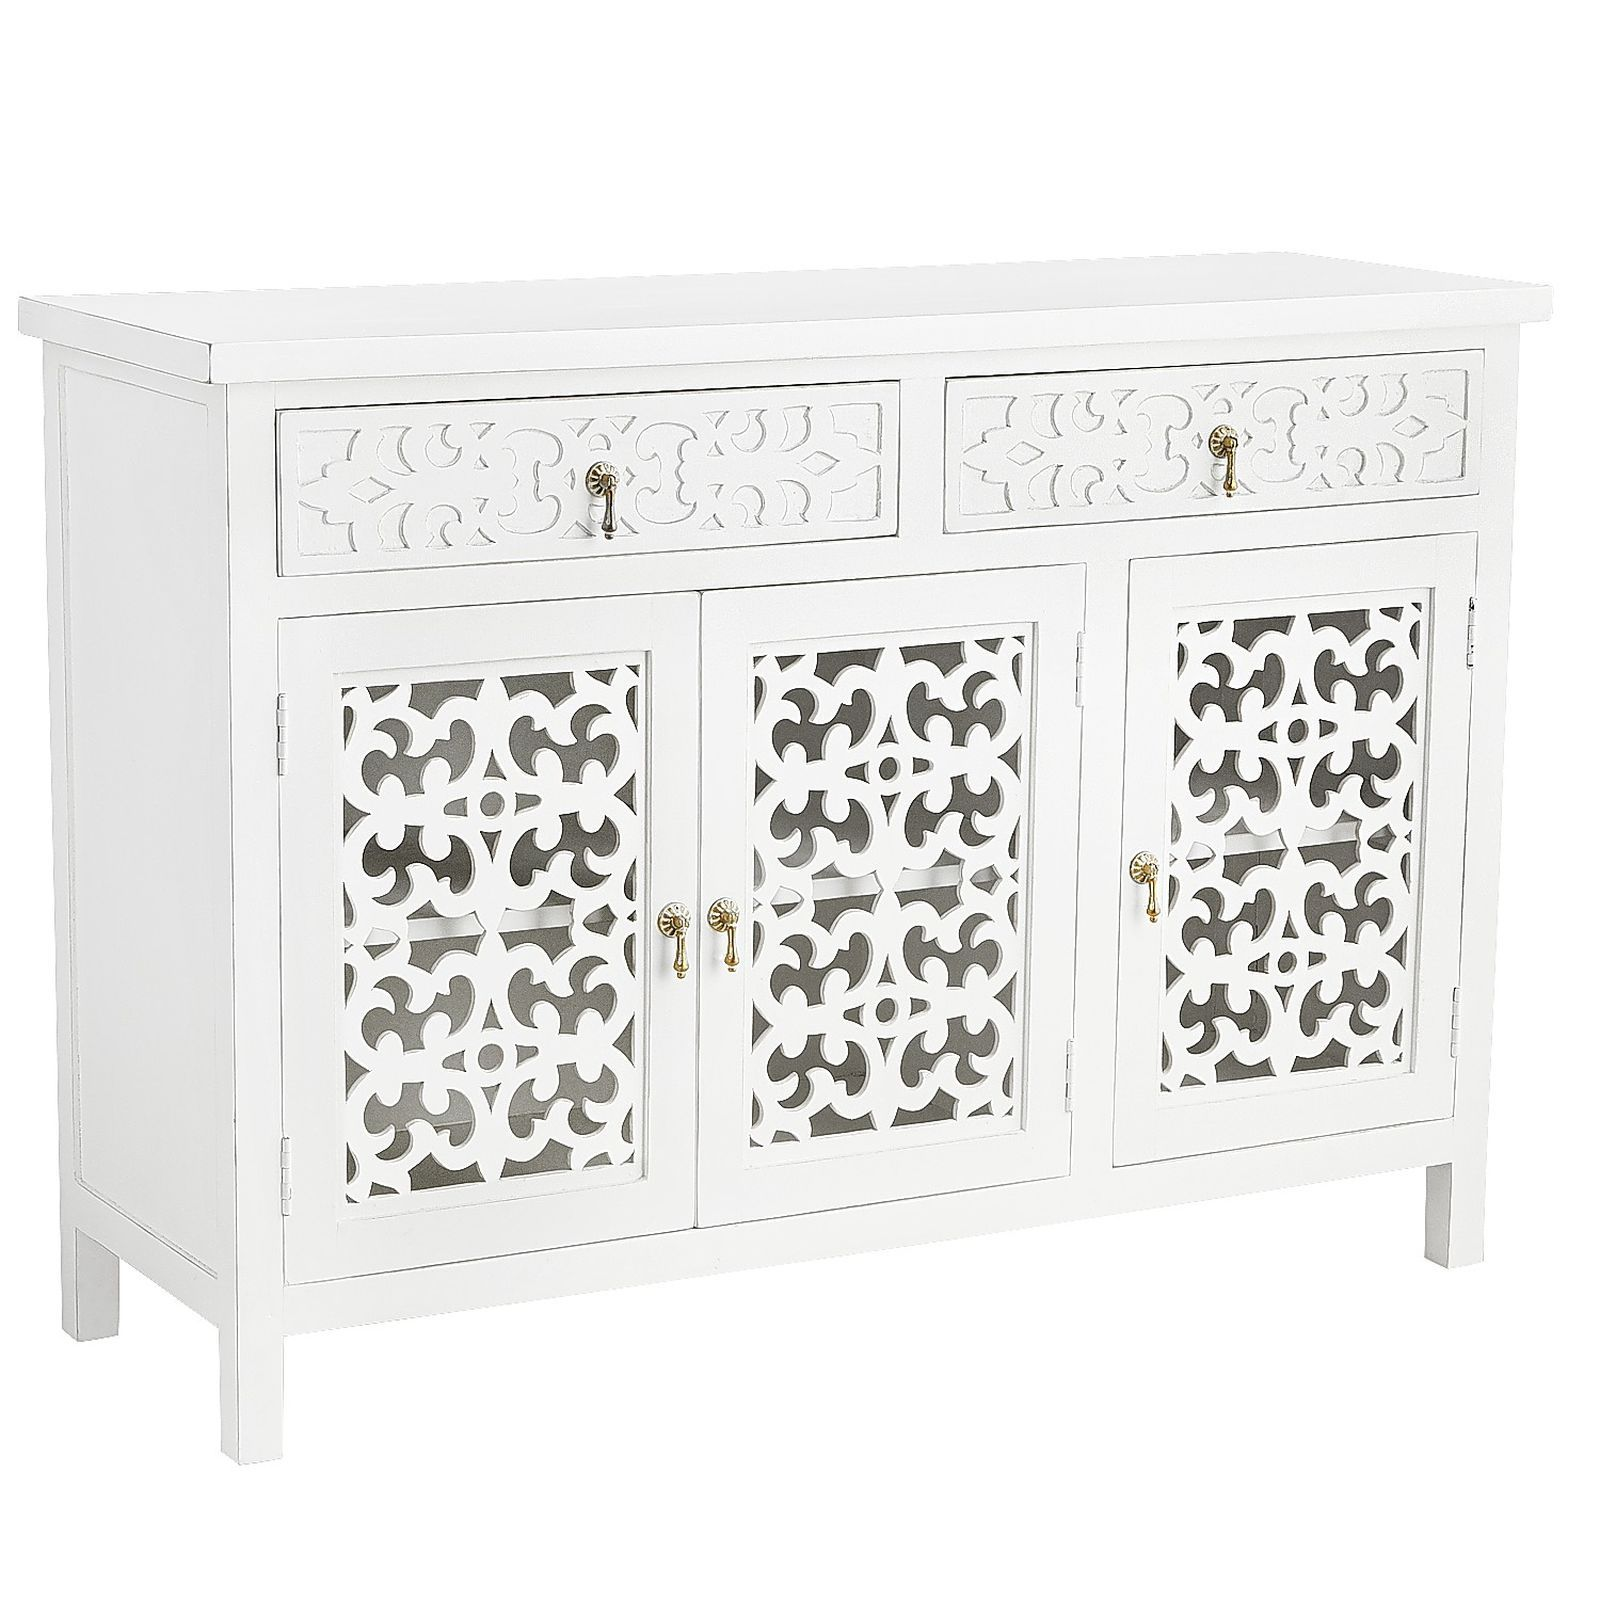 Our Landyn TV Stand Proves A Media Cabinet Neednu0027t Be Masculine. Crafted Of